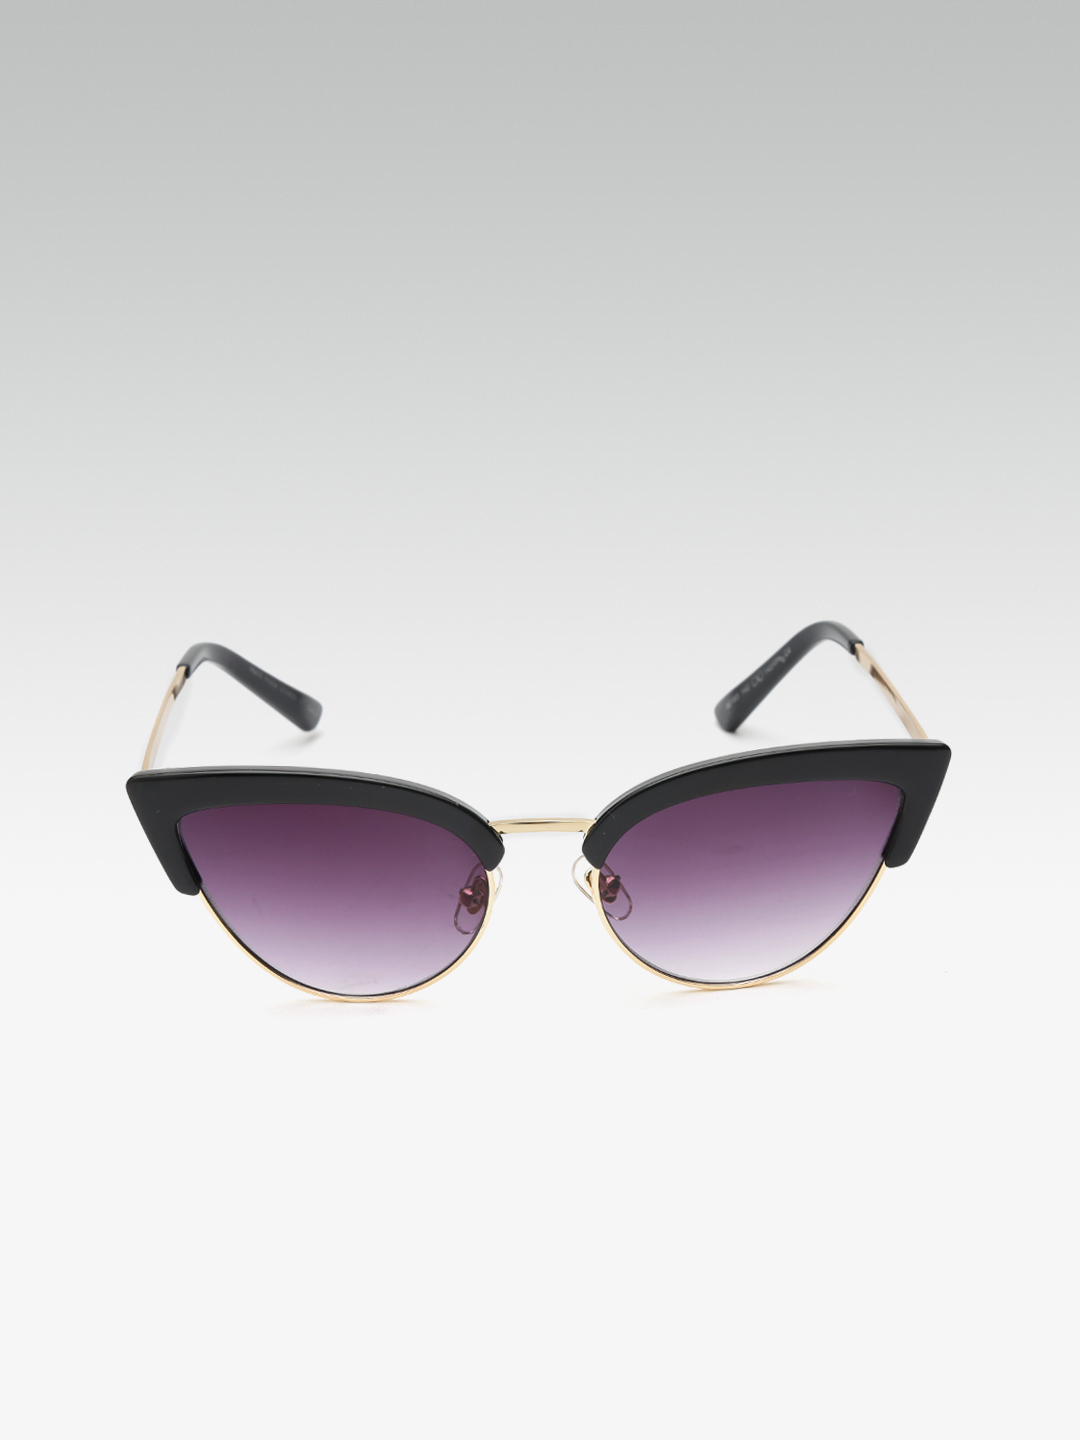 Sunglasses-The Catty Charms Sunglasses3